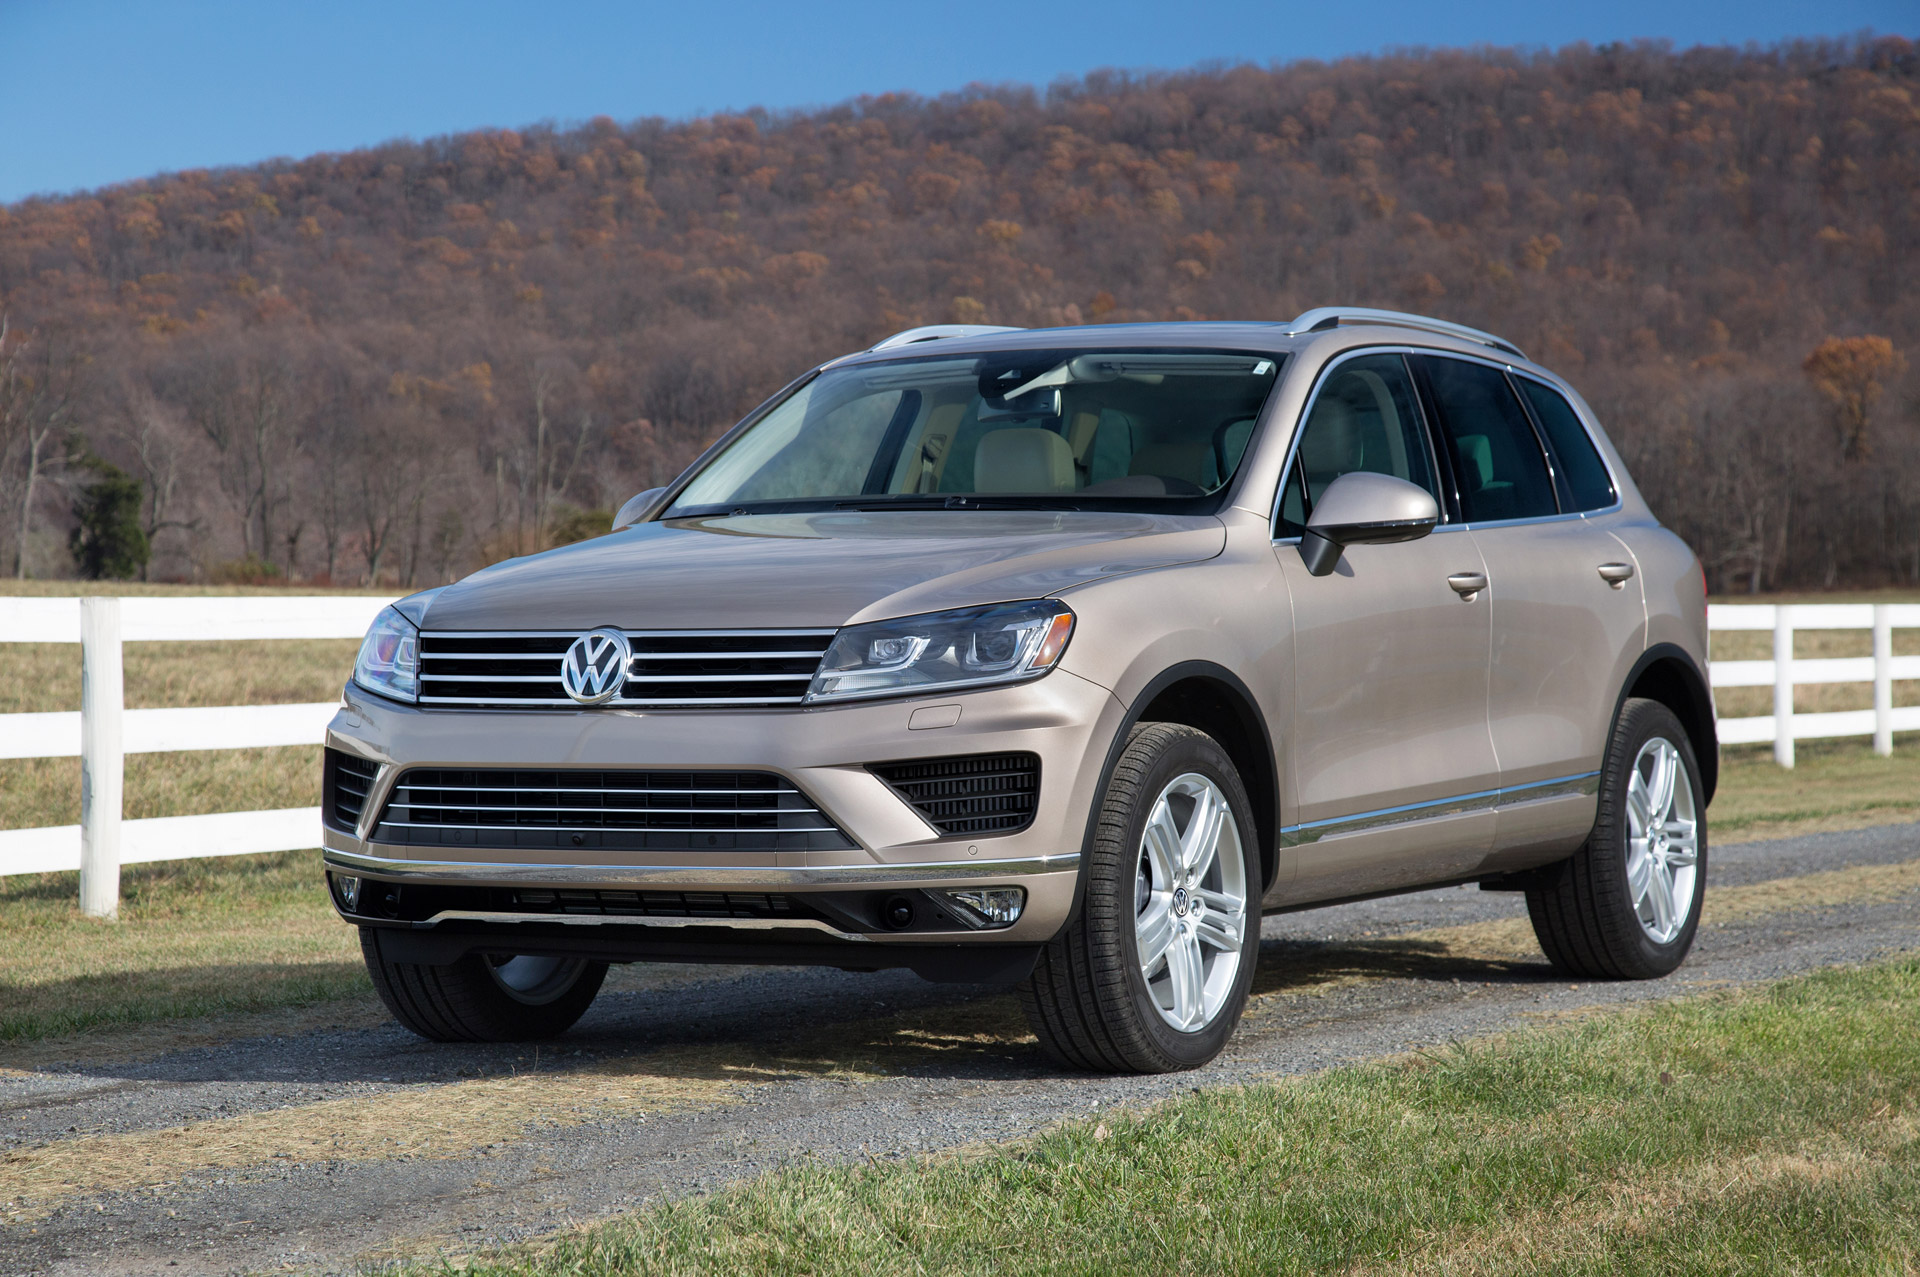 2016 Volkswagen Touareg Gets Price Reduction, Drops Hybrid ...